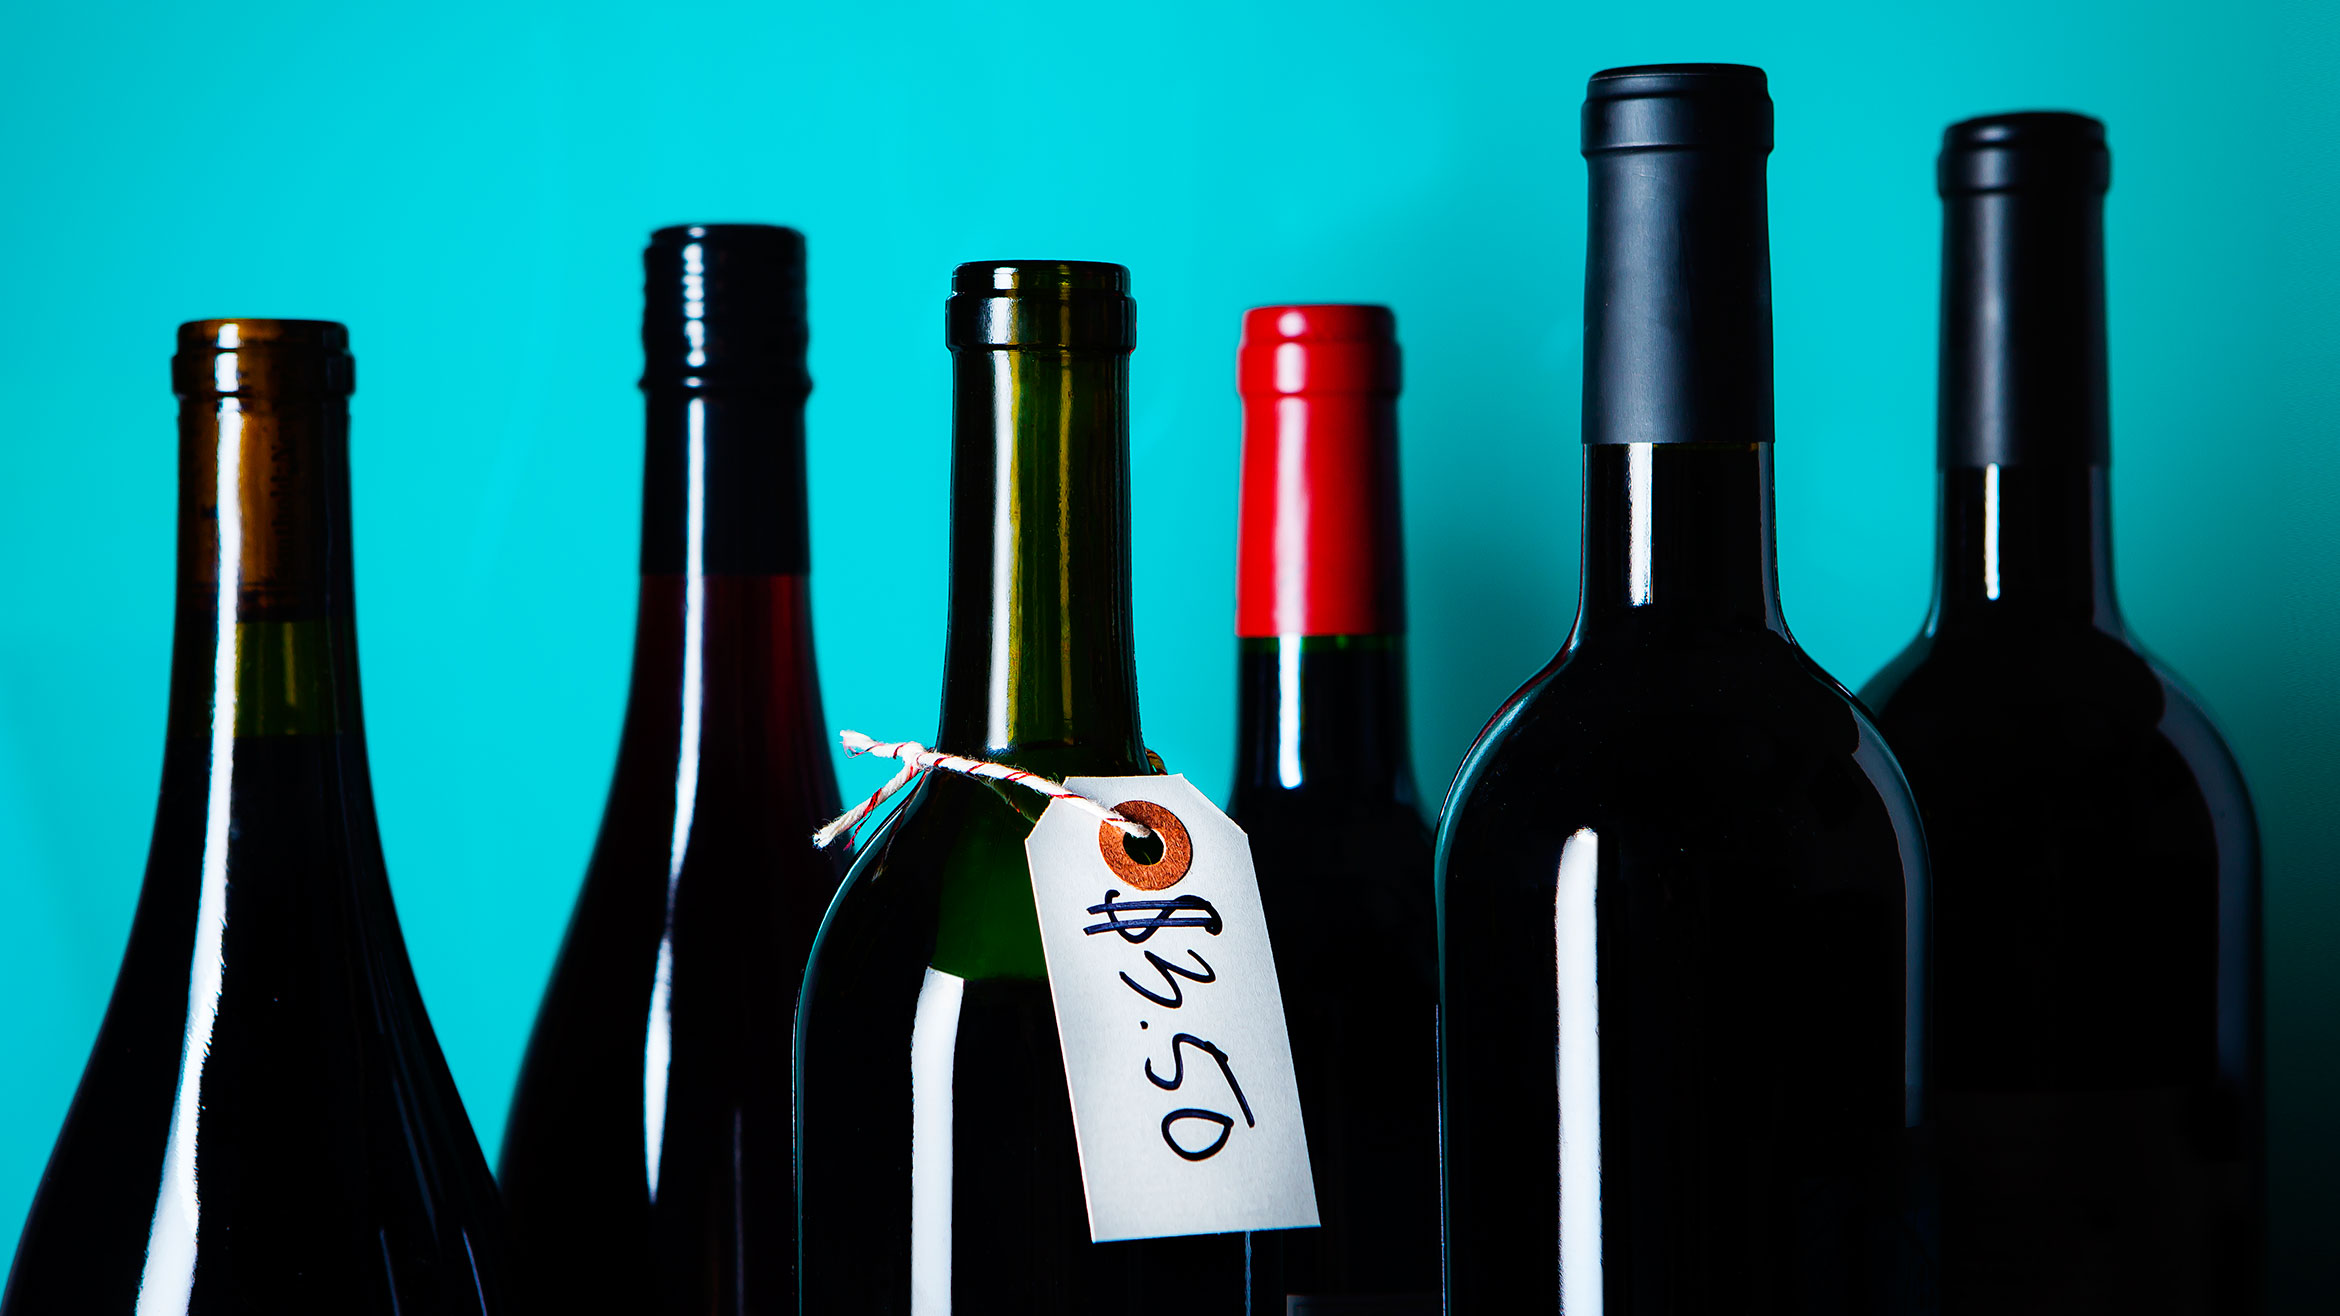 PUNCH   How Do You Make a Wine That Costs  3 50  How does a  3 50 bottle of wine go from grape to store for so little  Megan  Krigbaum investigates what actually goes into making such an inexpensive  wine